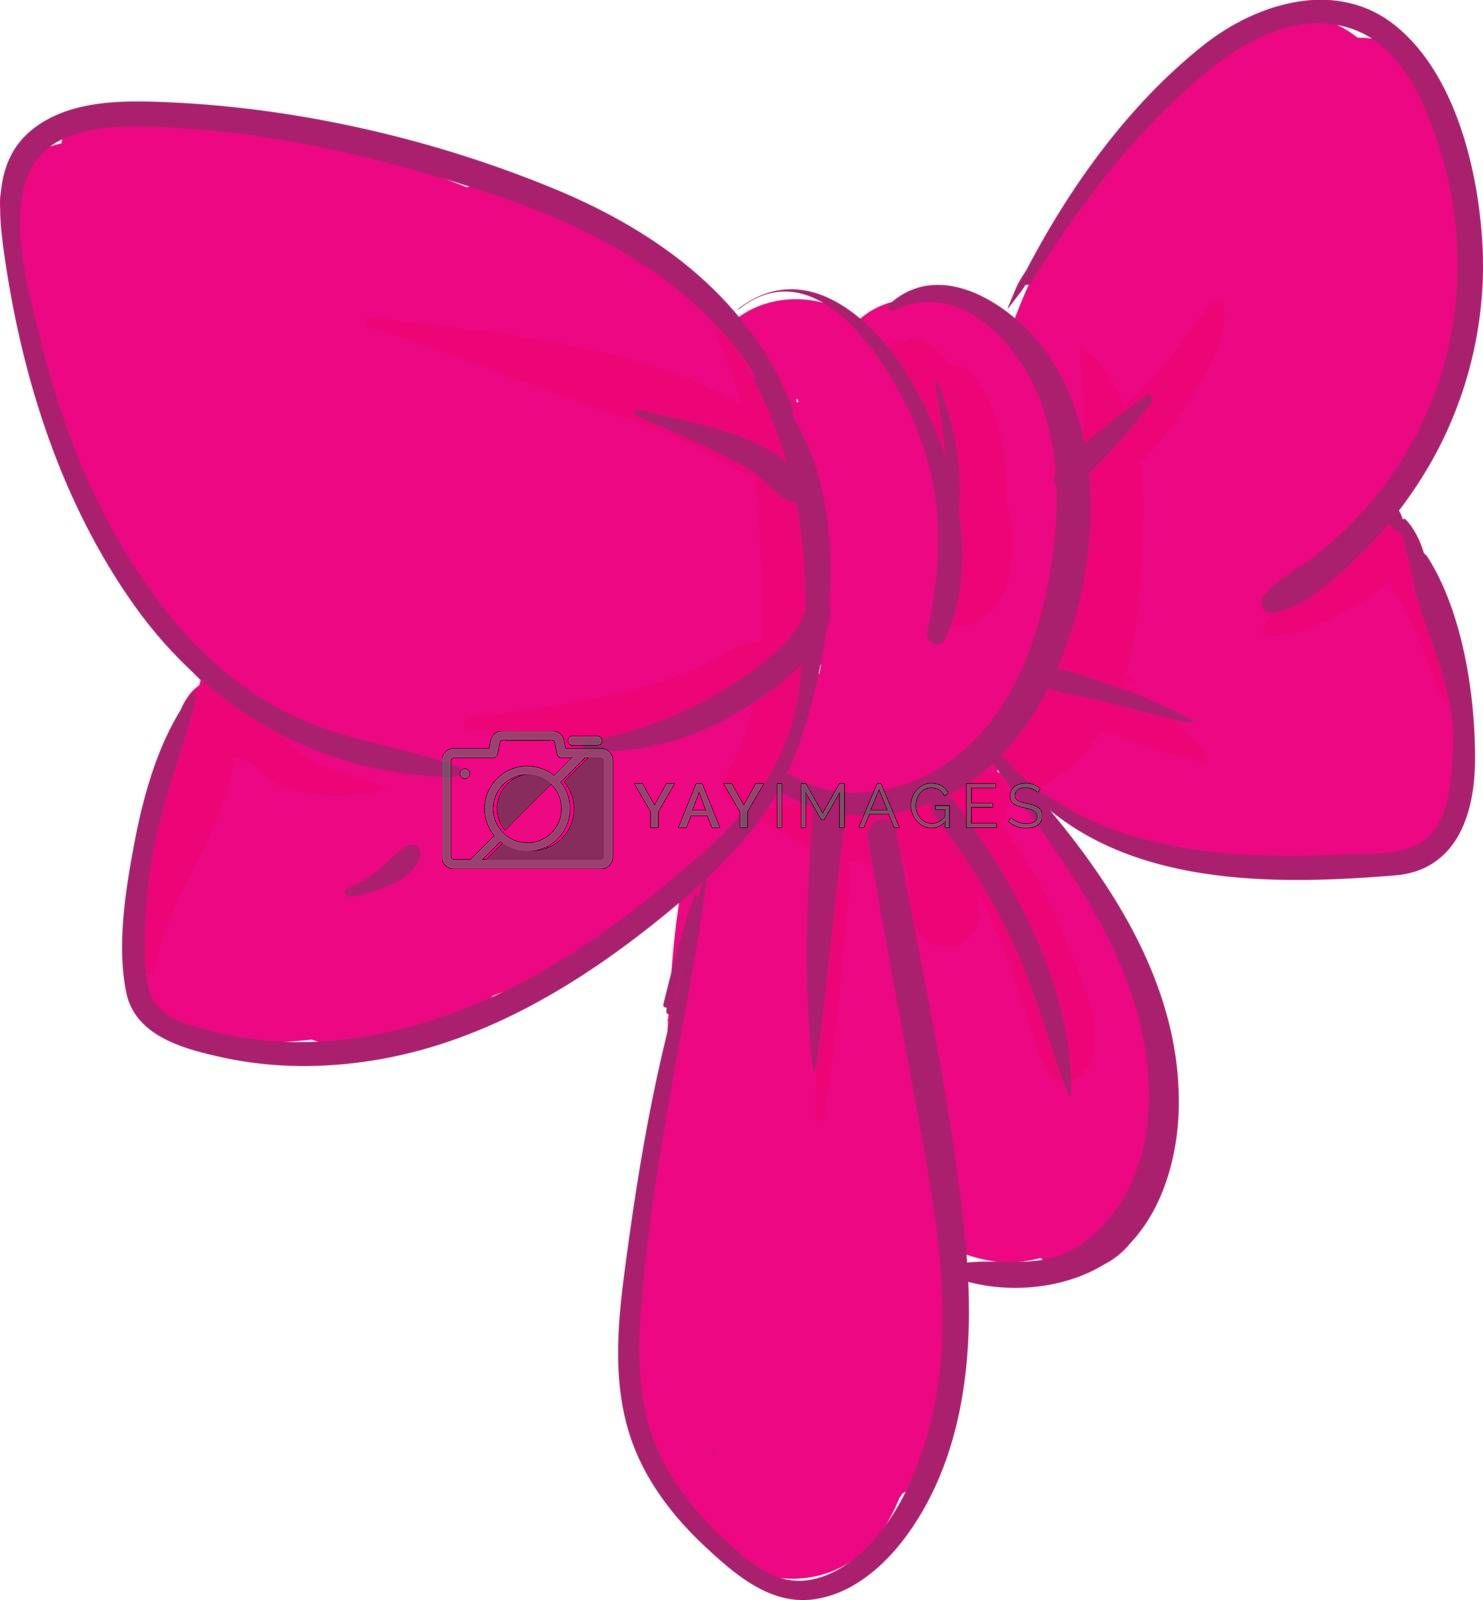 Royalty free image of Clipart of a pink bow vector or color illustration by Morphart